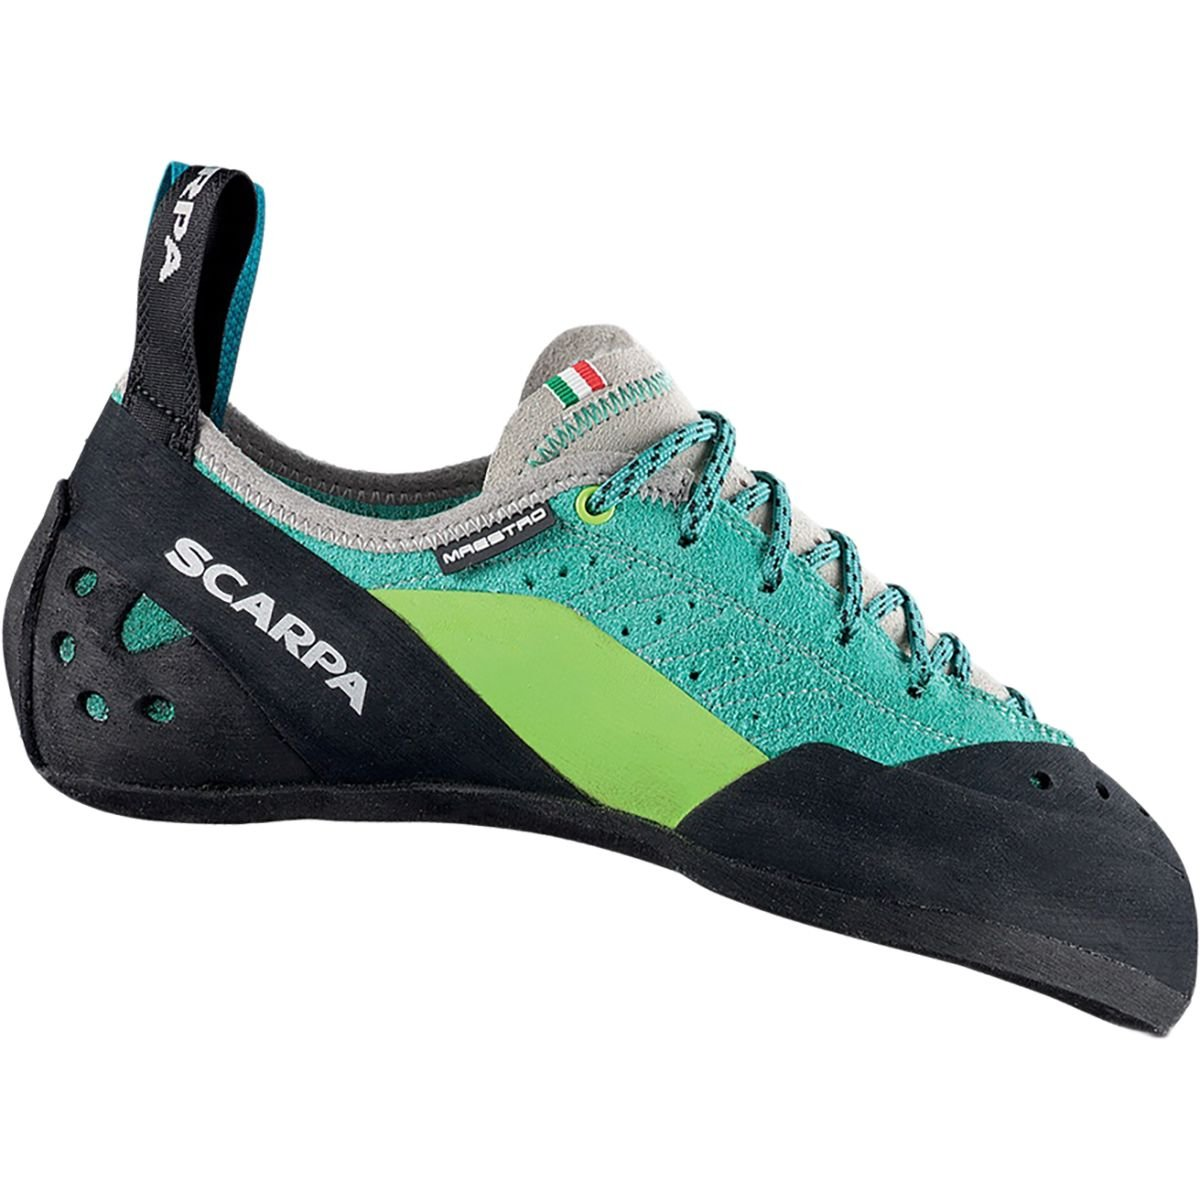 SCARPA Maestro ECO Climbing Shoe - Women's Green Blue 37 by SCARPA